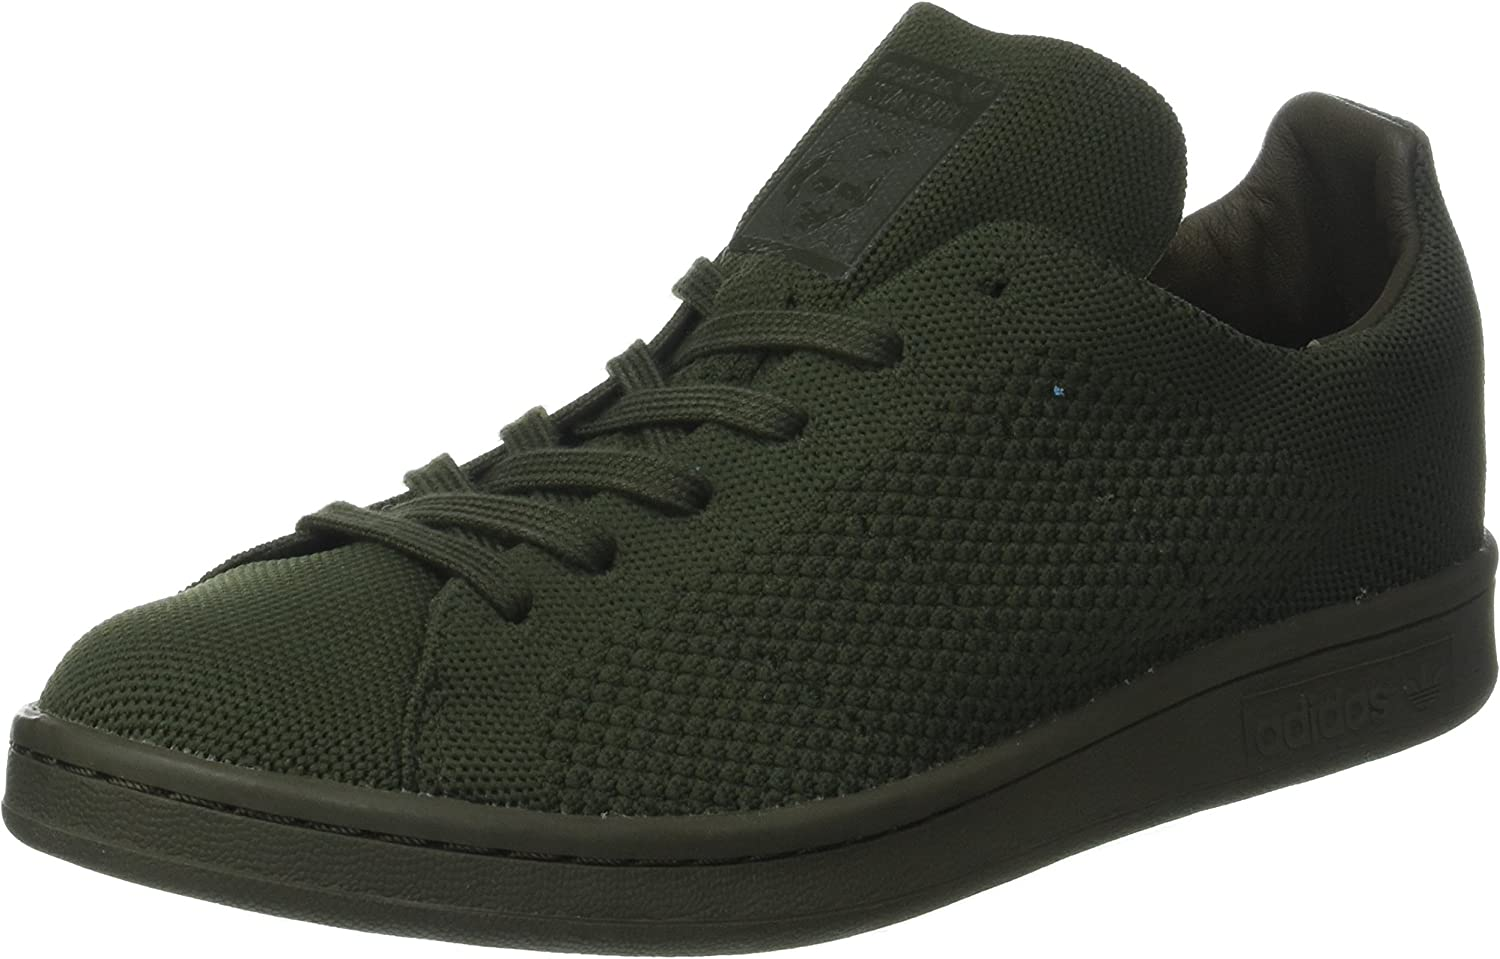 Adidas Unisex Adults' Stan Smith Primeknit Low-Top Sneakers